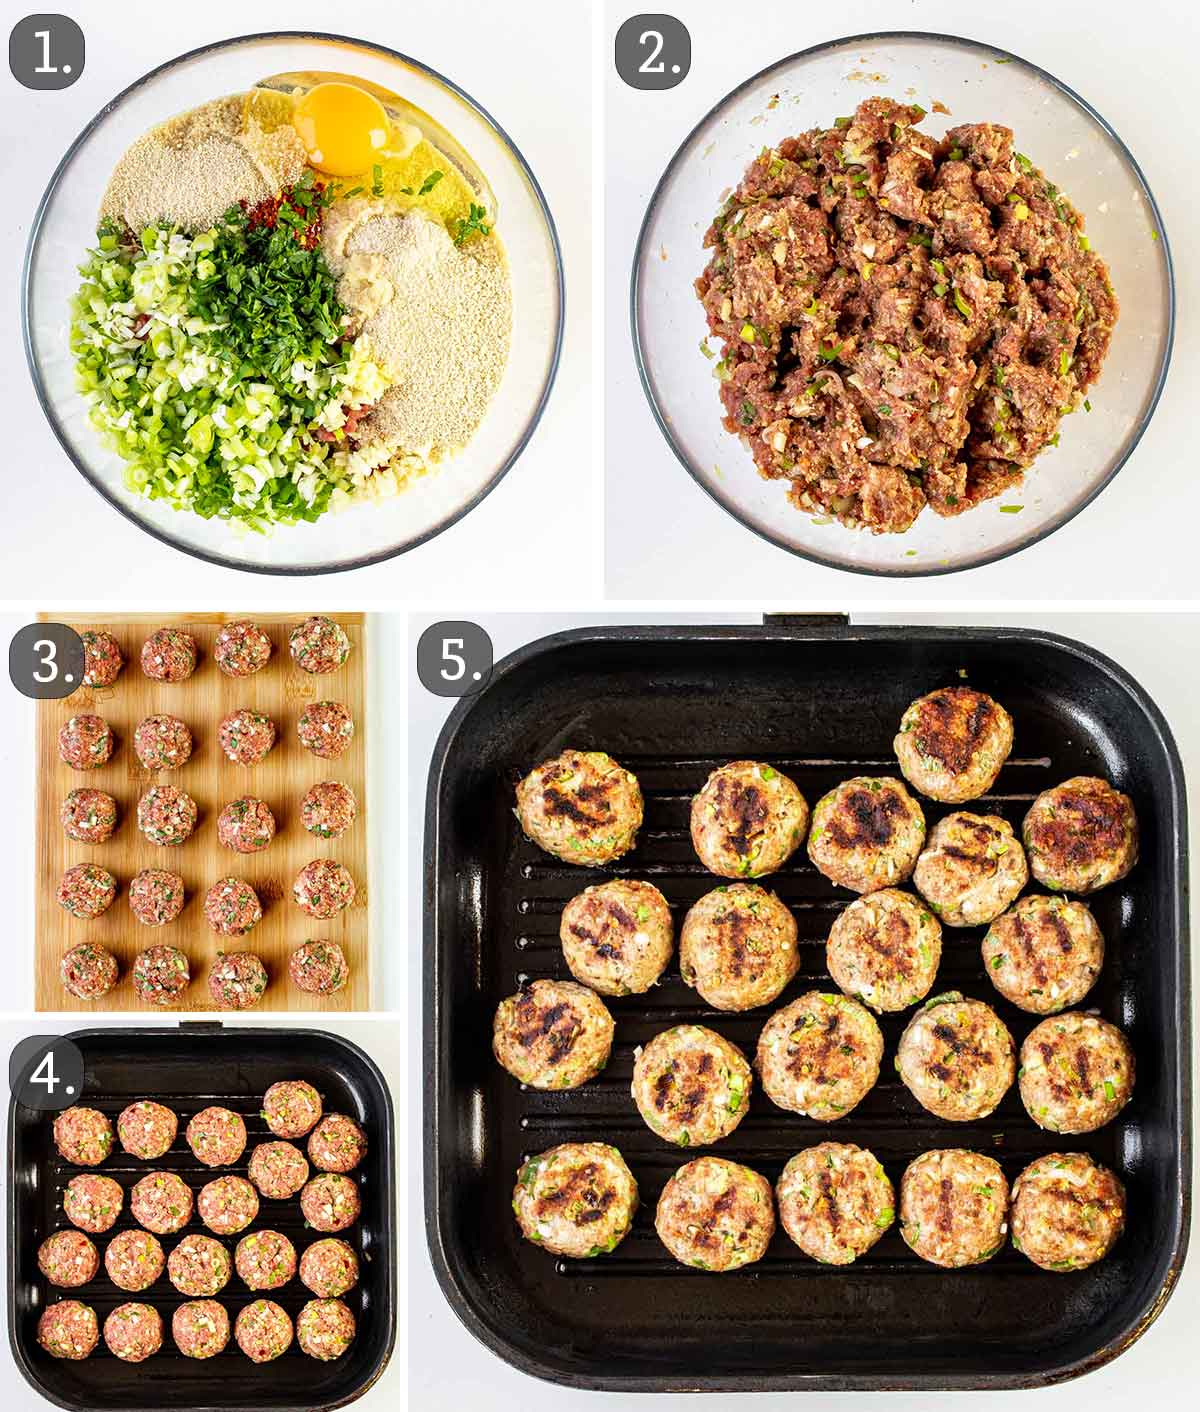 detailed process shots showing how to make grilled vietnamese meatballs.